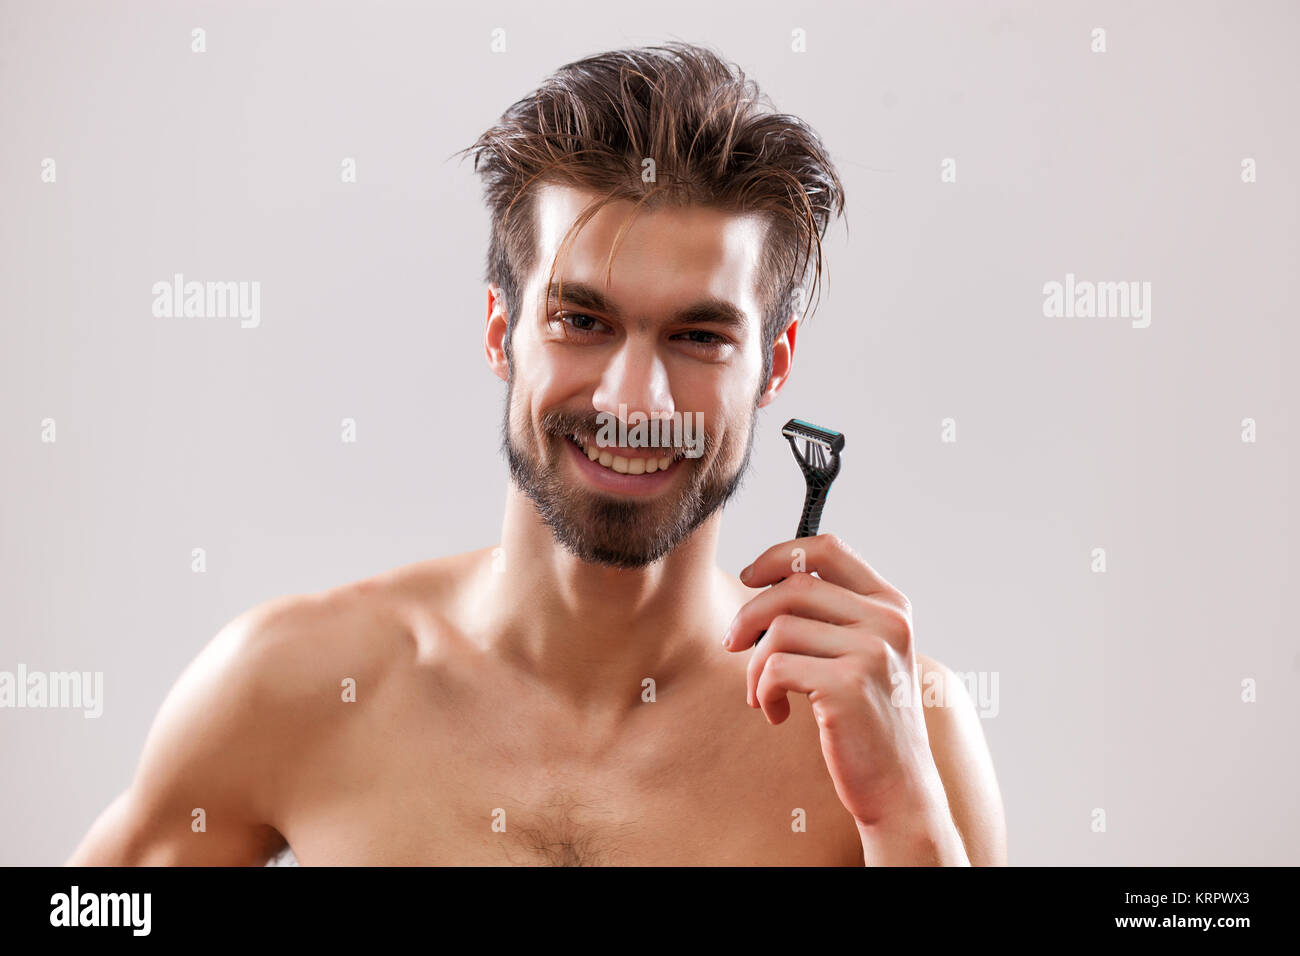 Young man is holding razor and he is going to shave his beard. - Stock Image